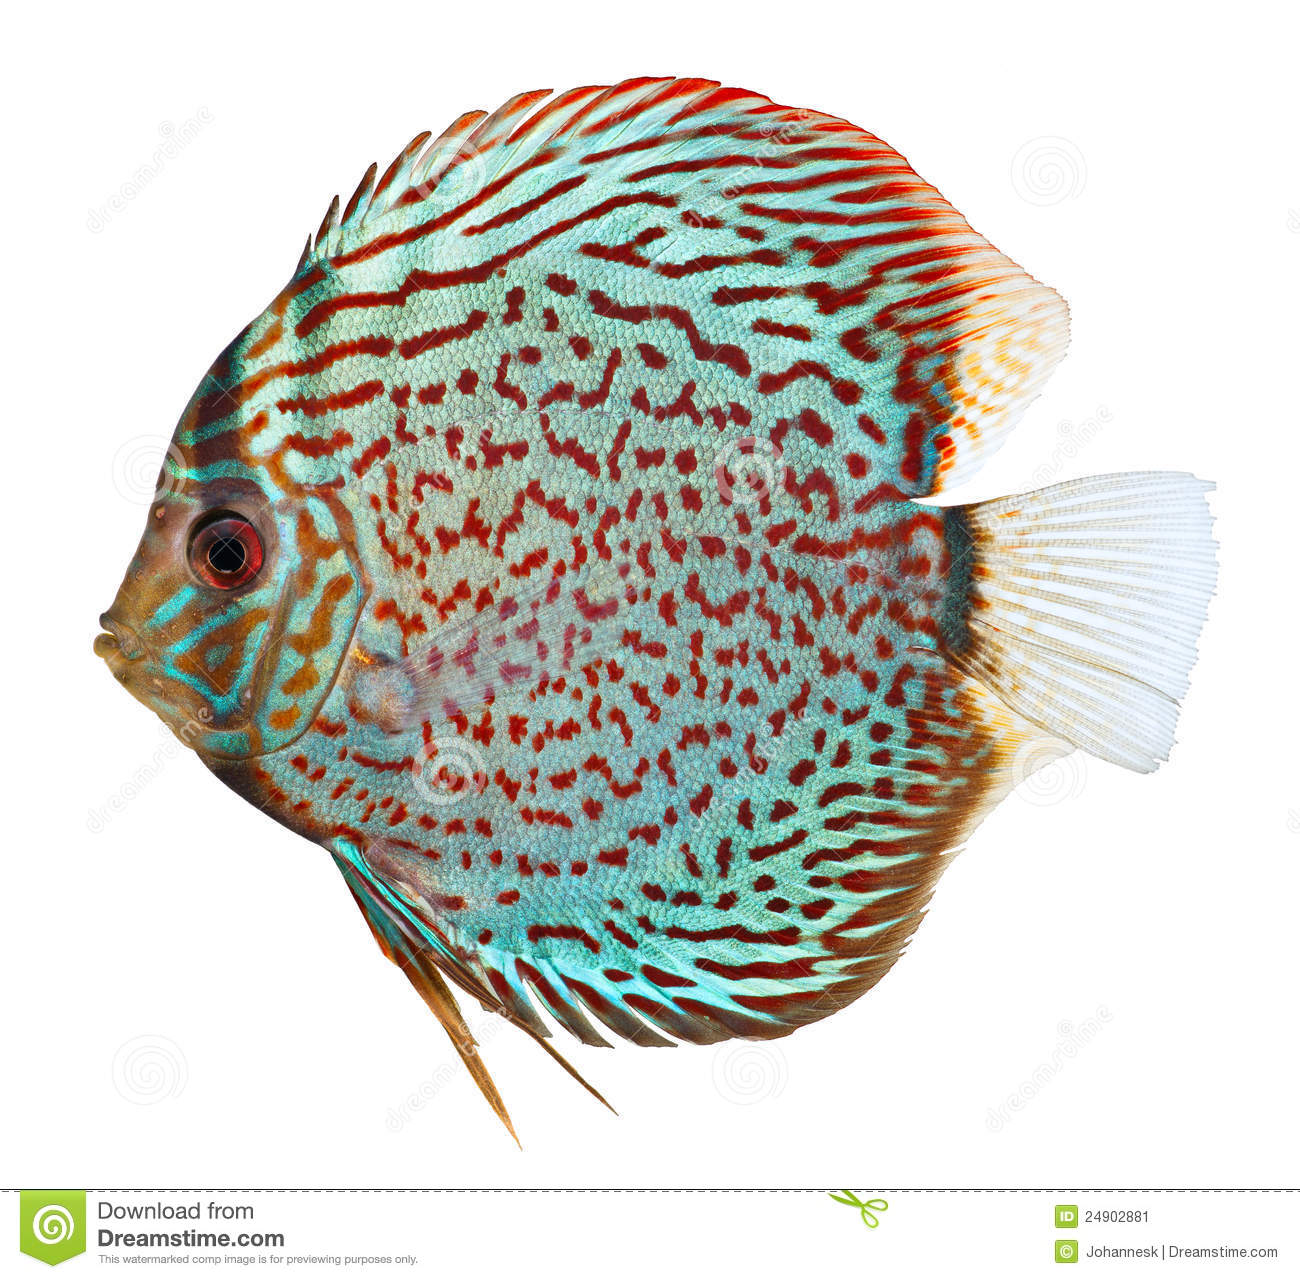 Discus Fish clipart #16, Download drawings